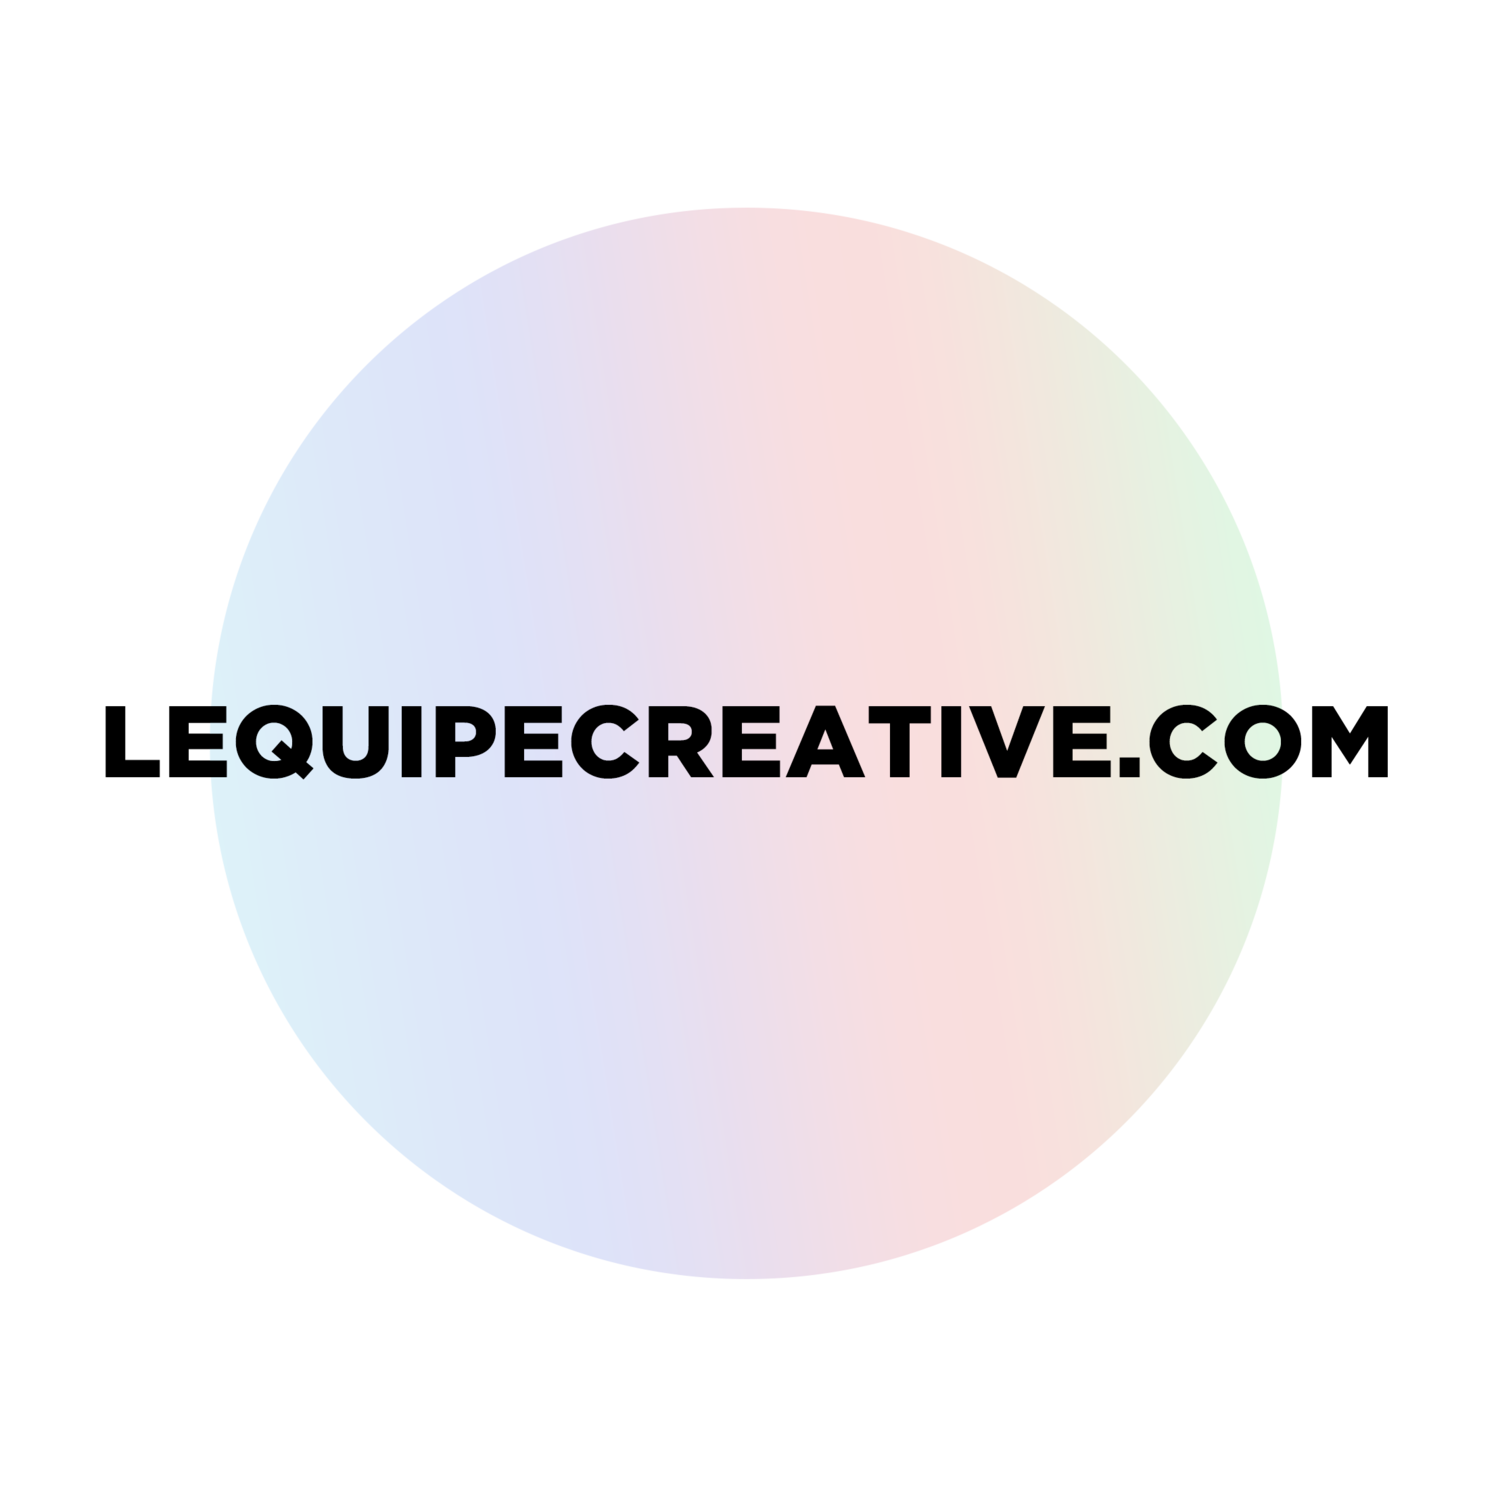 LEQUIPECREATIVE.COM